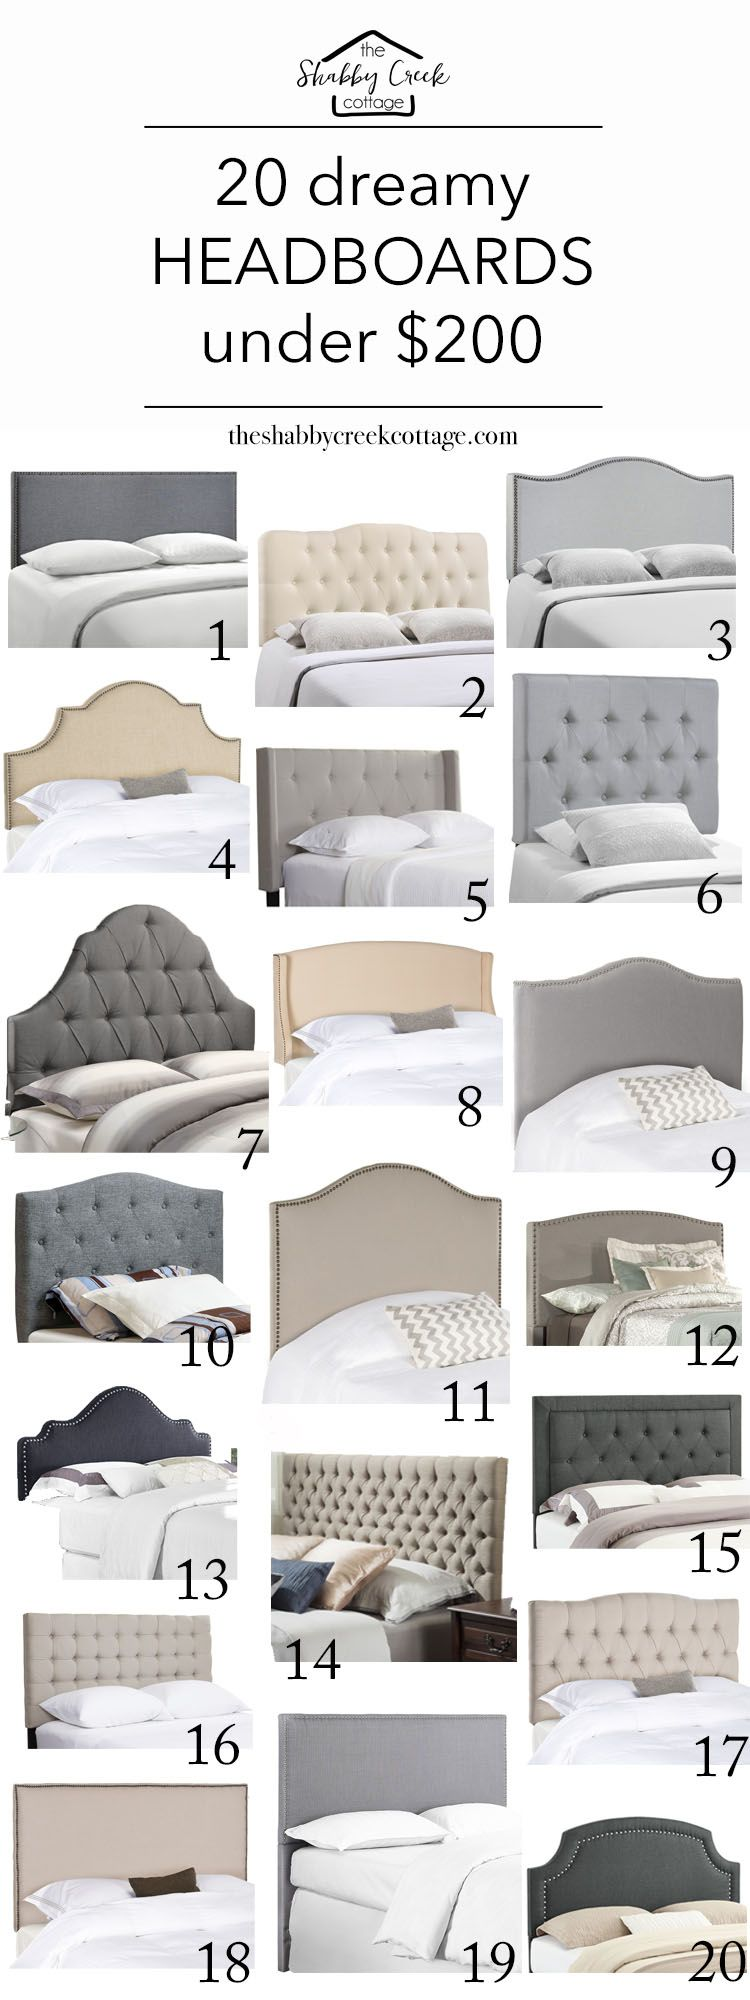 Diy bedroom headboard ideas dreamy upholstered headboards you can actually afford  budgeting